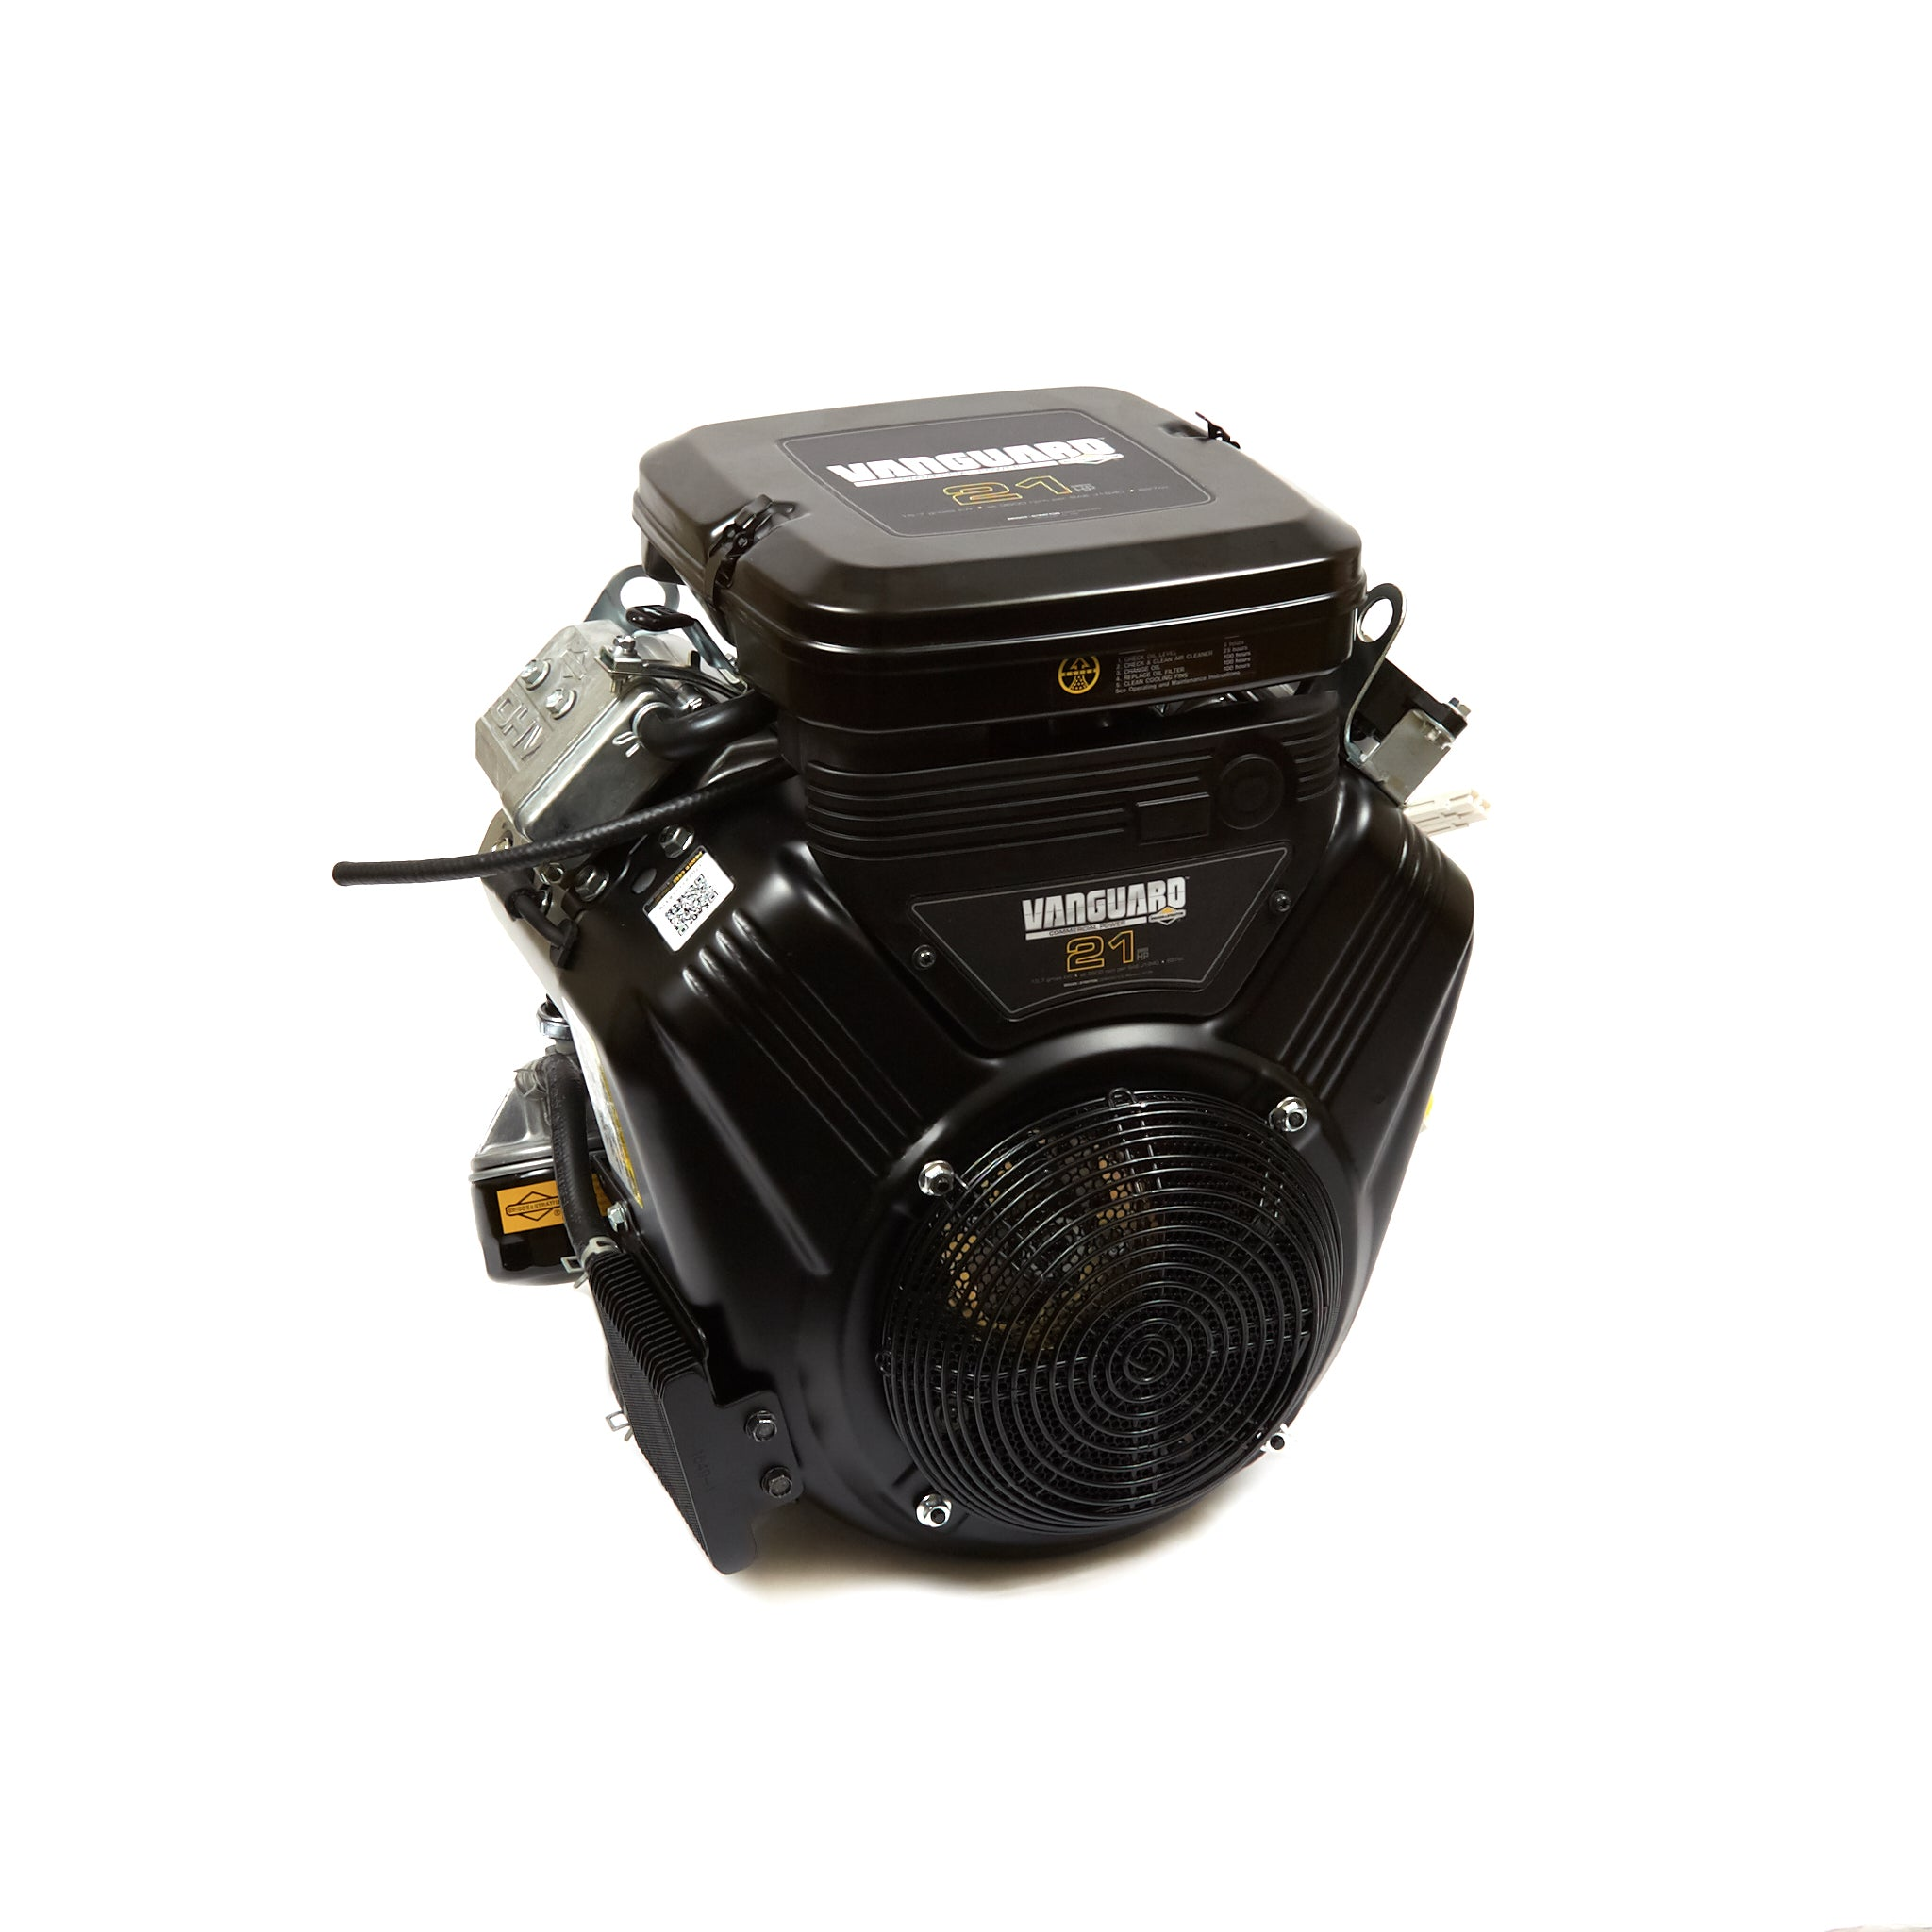 Briggs and Stratton 21 HP Vanguard Engine